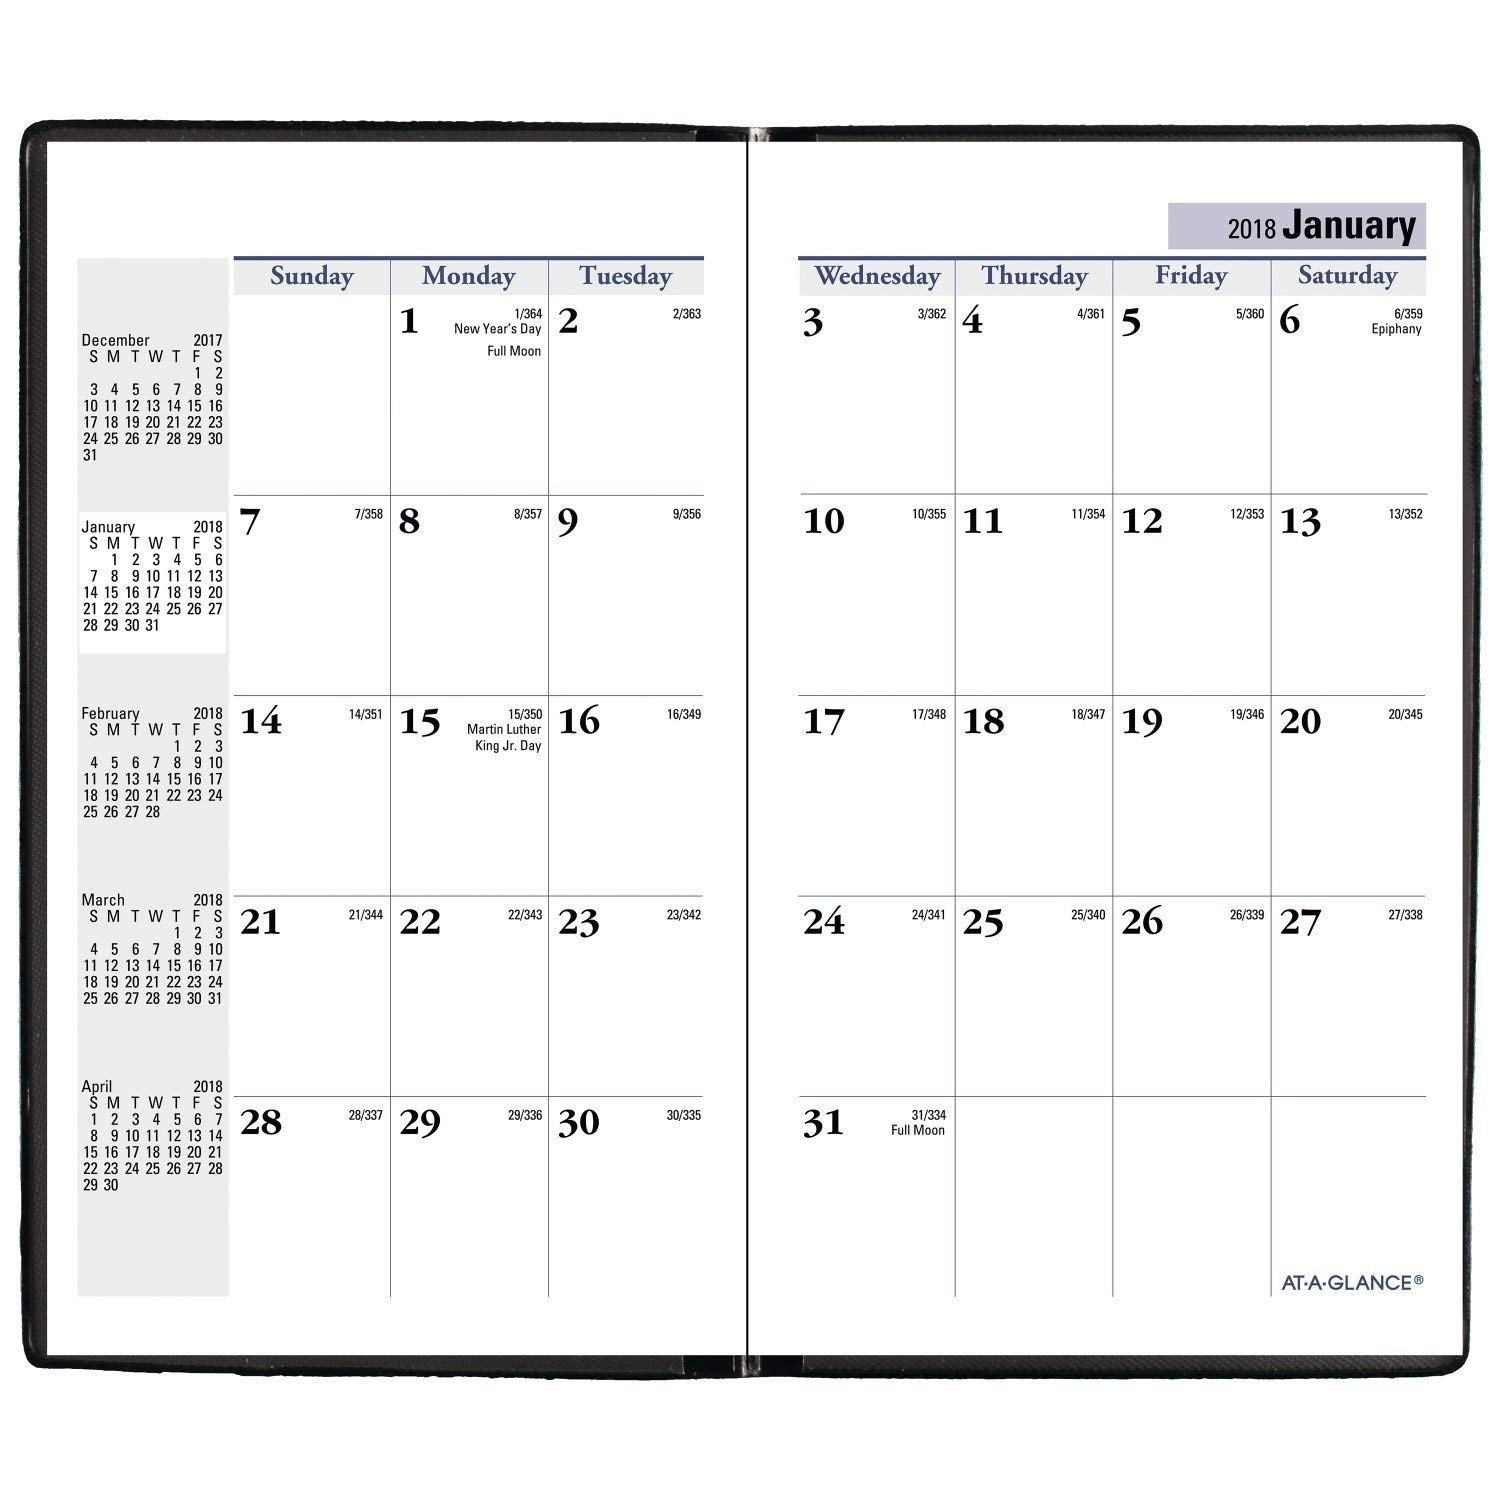 Info Intended For Staples At A Glance Calendar 2019 - Calendar Calendar 2019 Staples